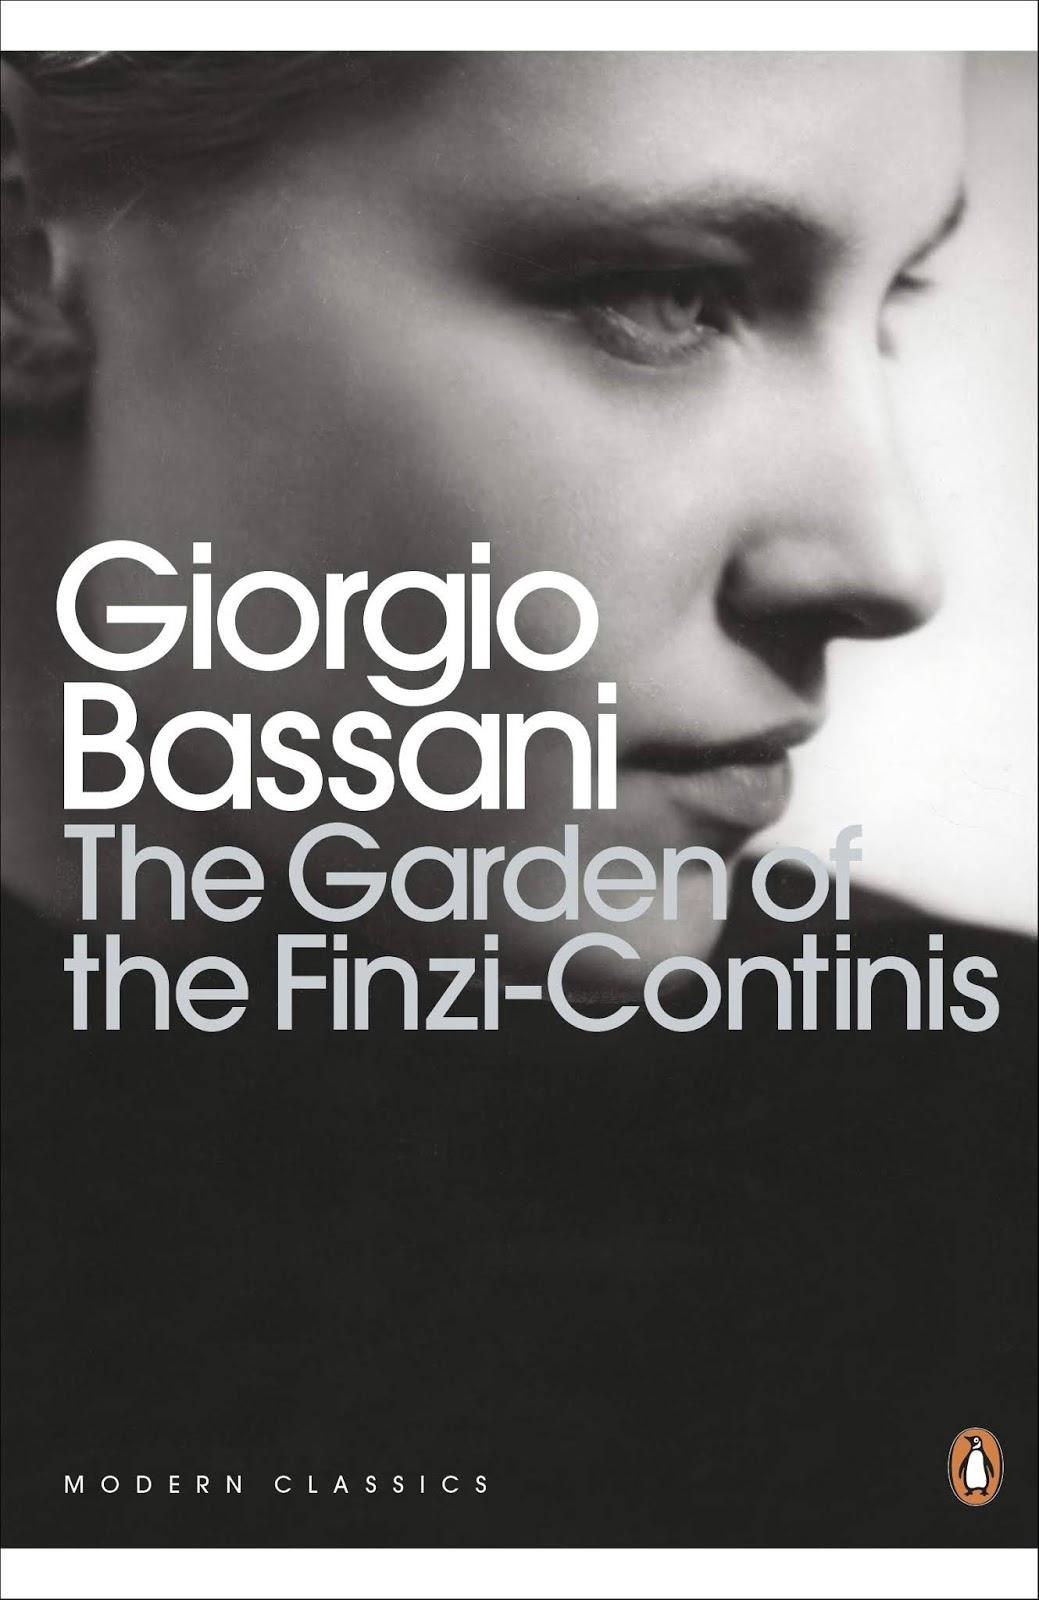 Book cover for The Garden of the Finzi-Continis by Giorgio Bassani The Garden of the Finzi-Continis in the South Manchester, Chorlton, Cheadle, Fallowfield, Burnage, Levenshulme, Heaton Moor, Heaton Mersey, Heaton Norris, Heaton Chapel, Northenden, and Didsbury book group